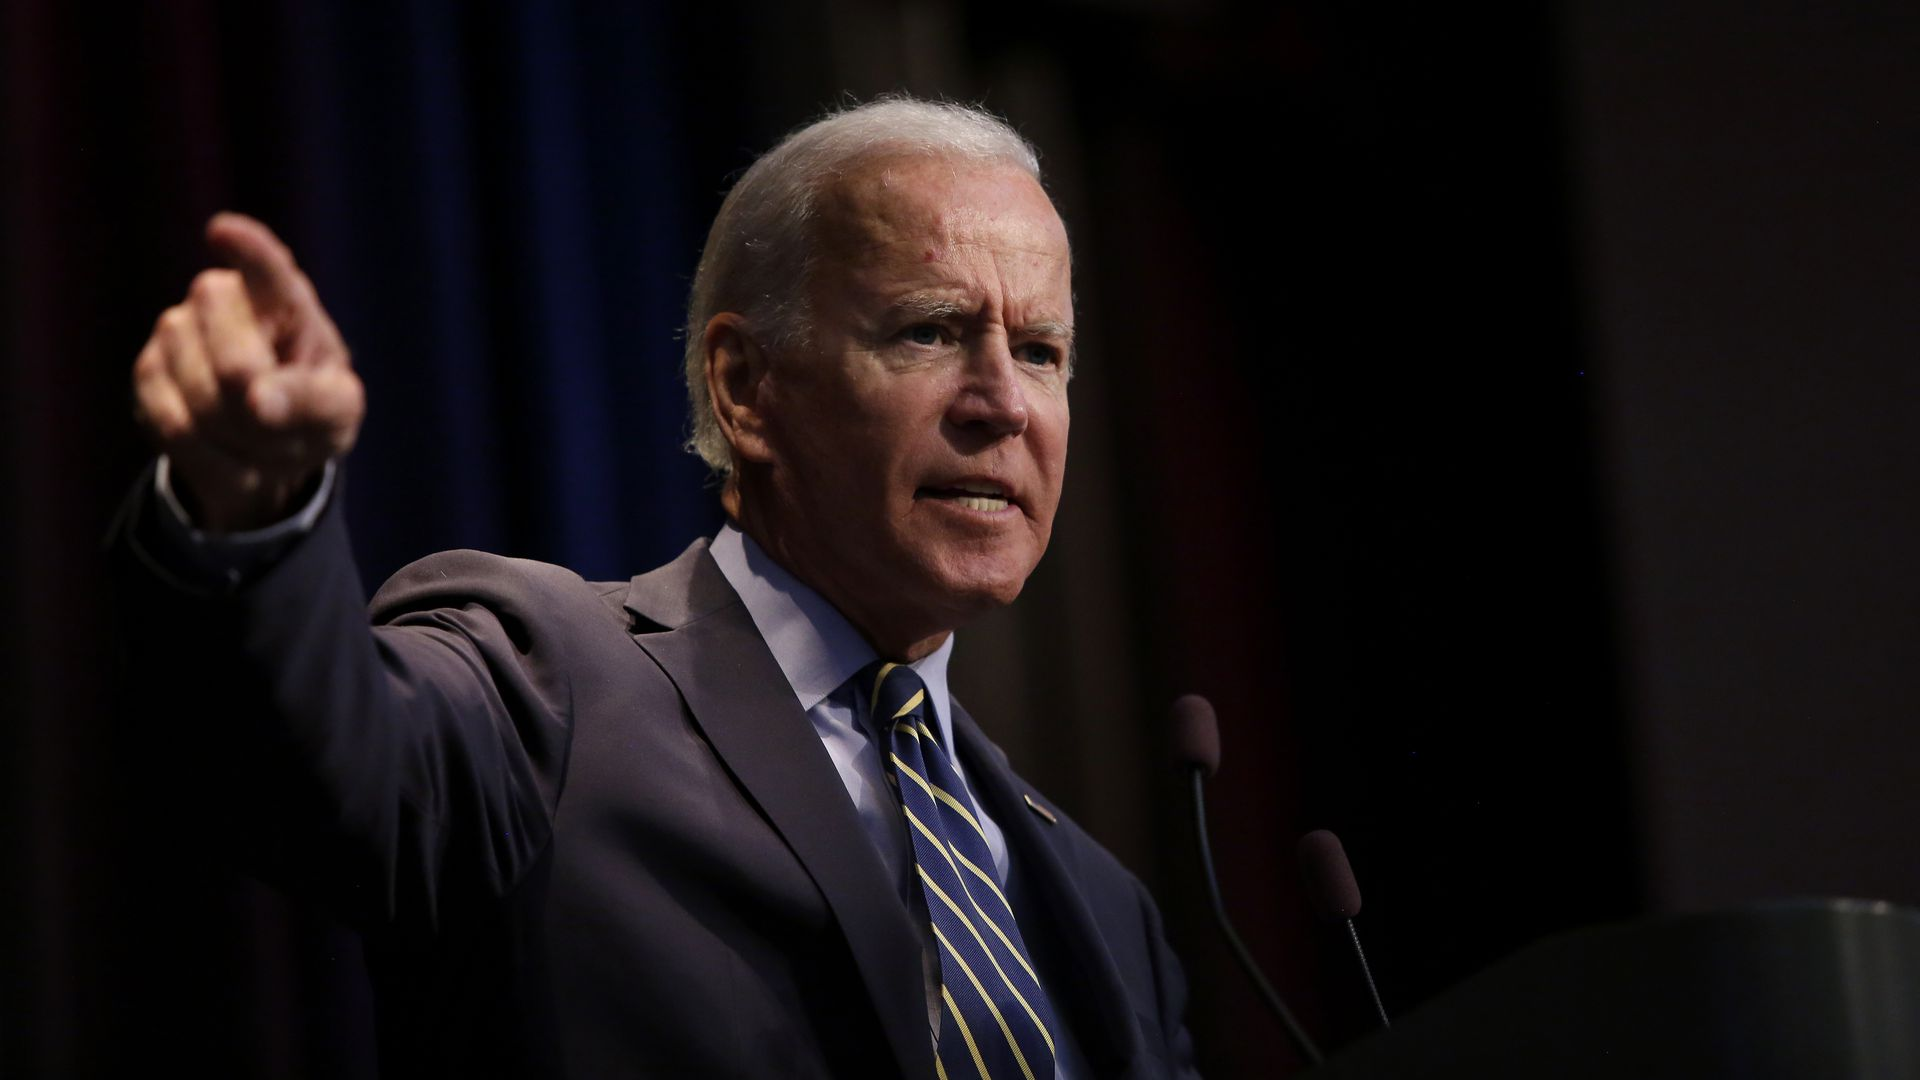 Democratic presidential candidate, former Vice President Joe Biden speaks at the Iowa Federation Labor Convention on August 21